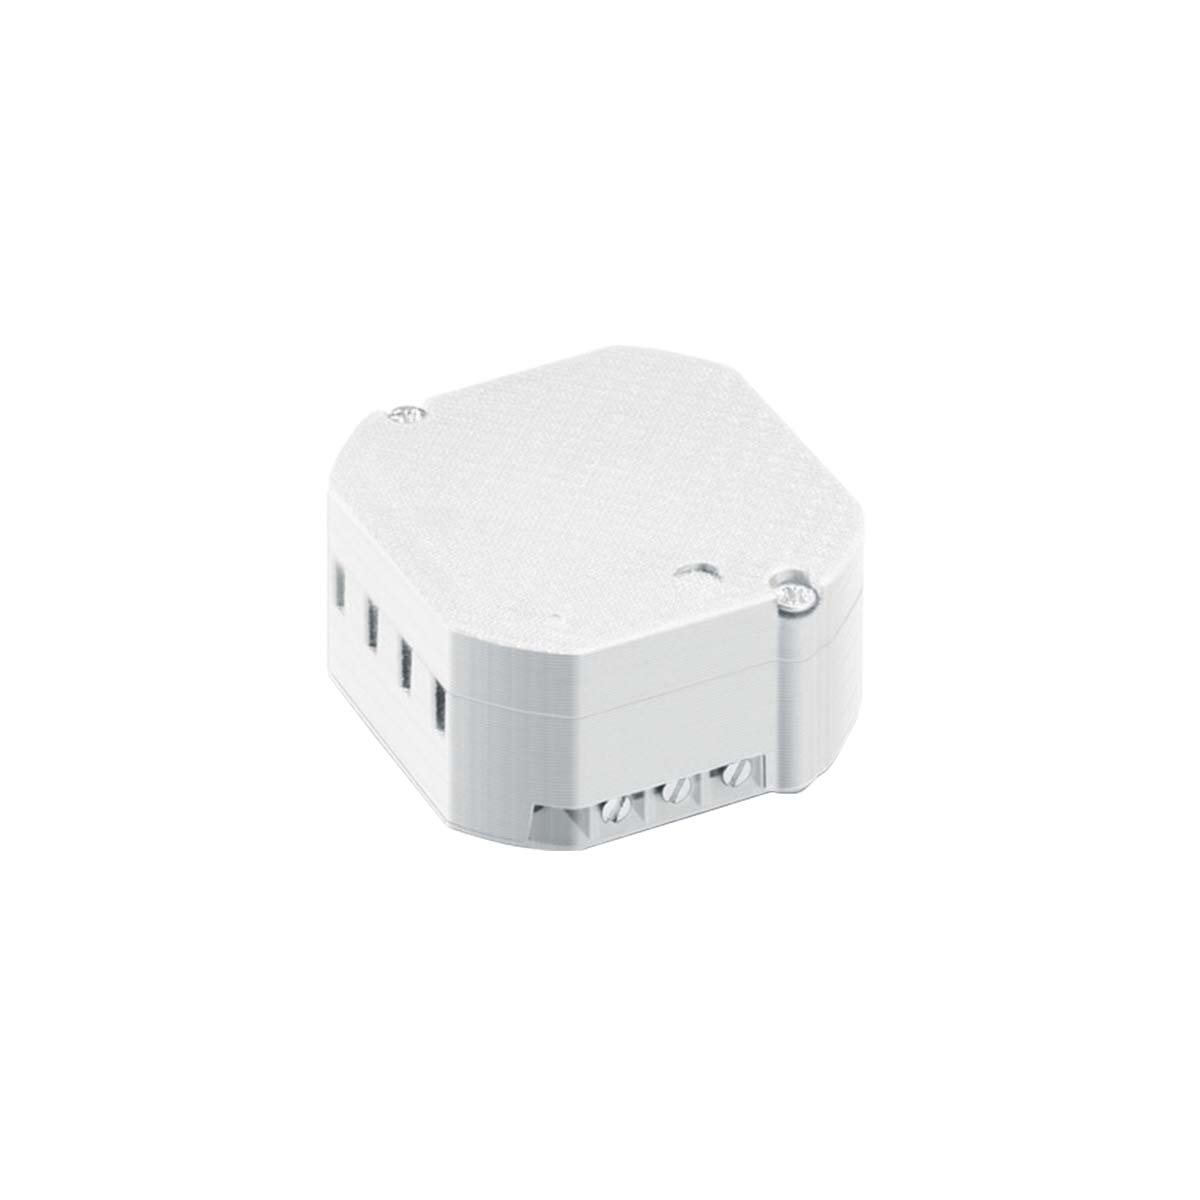 UNIVERSAL DIMMER FOR 230 V LED LIGHTS AND HALOGEN - Teleco